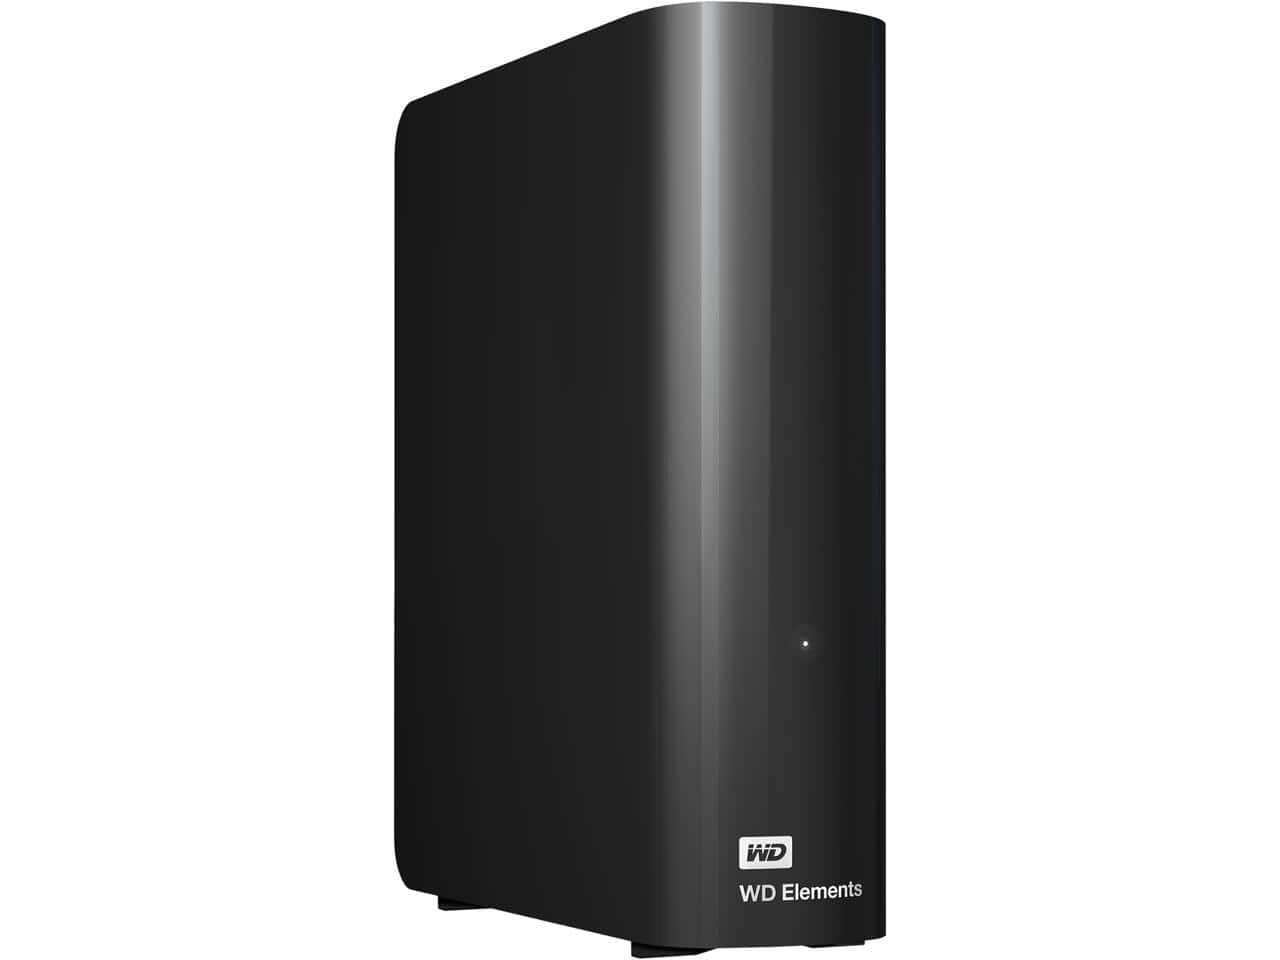 6035e0b0979 8TB WD Elements Desktop USB 3.0 External Hard Drive - Slickdeals.net